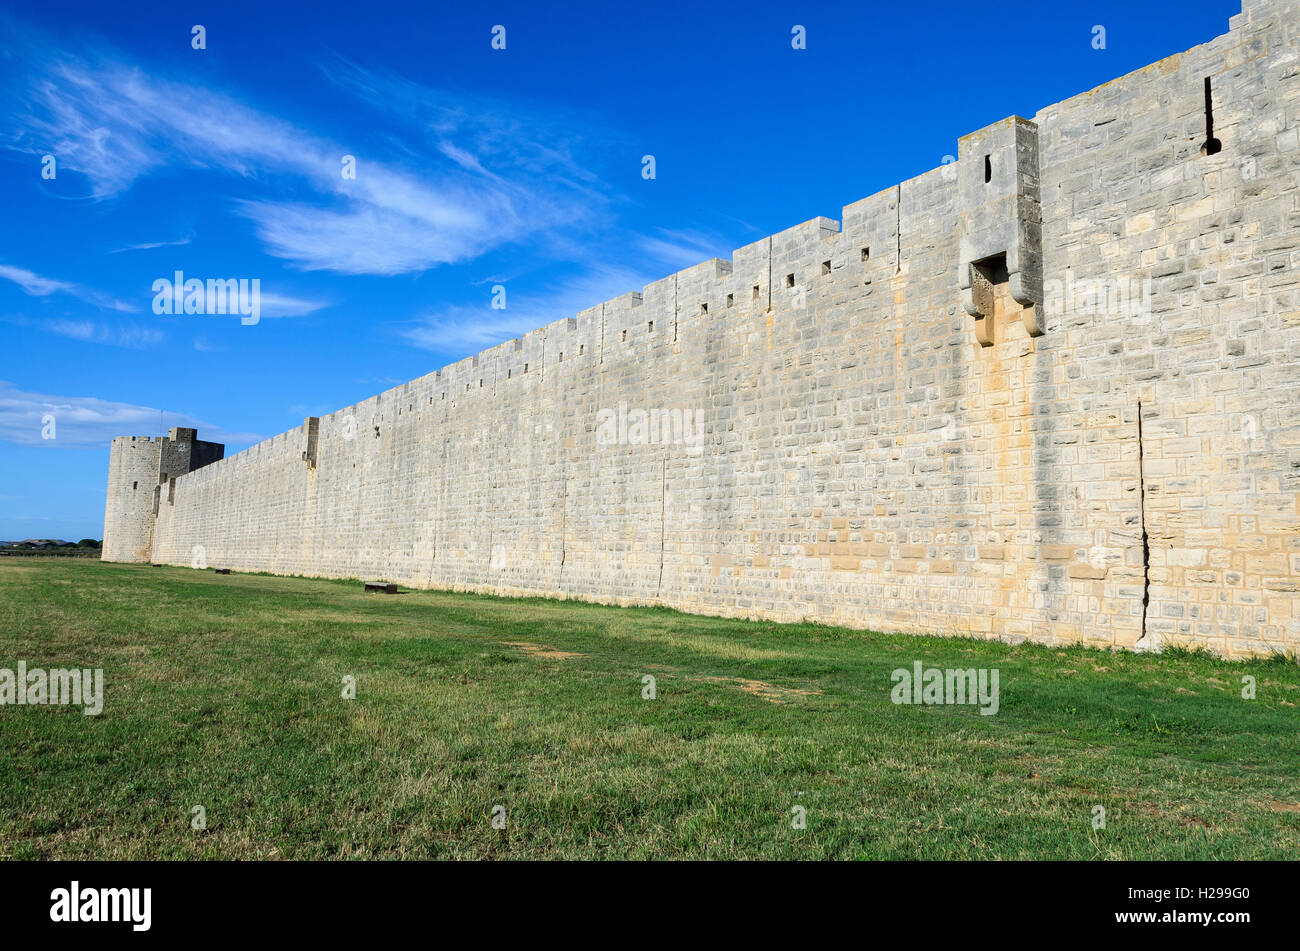 Remparts, Aigues Mortes, Gard, France - Stock Image